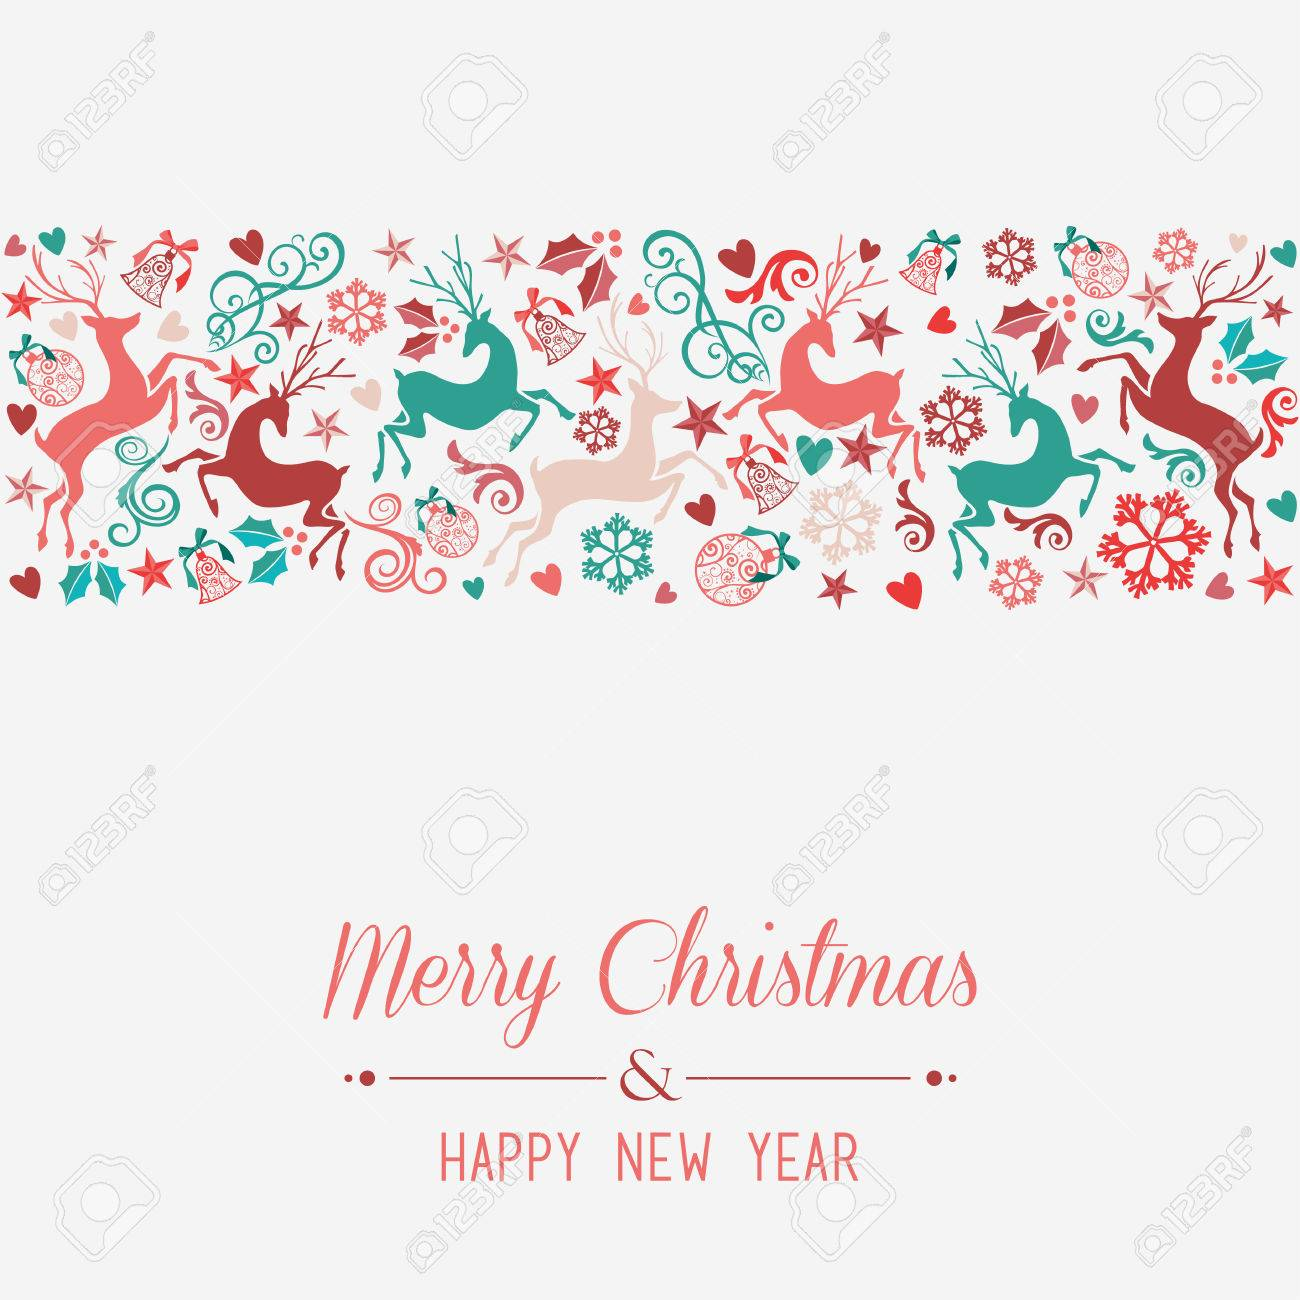 merry christmas and happy new year banner greeting card background stock vector 24078722